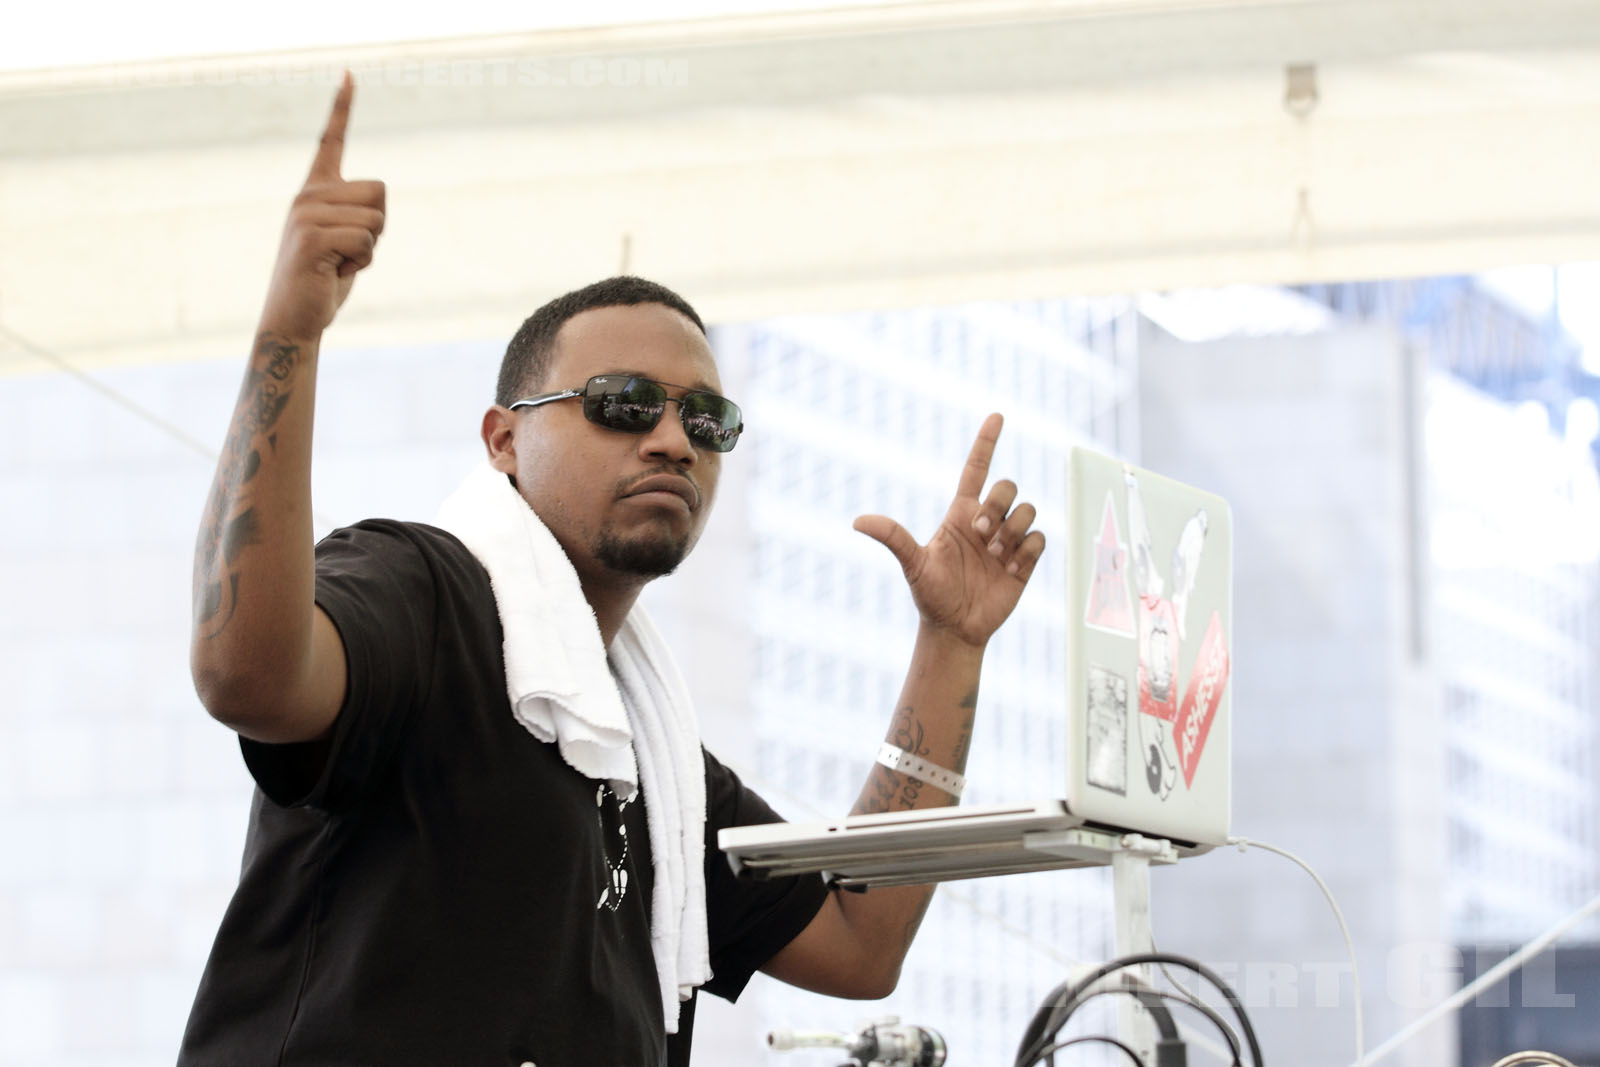 DJ RASHAD AND DJ SPINN - 2012-05-27 - PARIS - Parc de la Villette